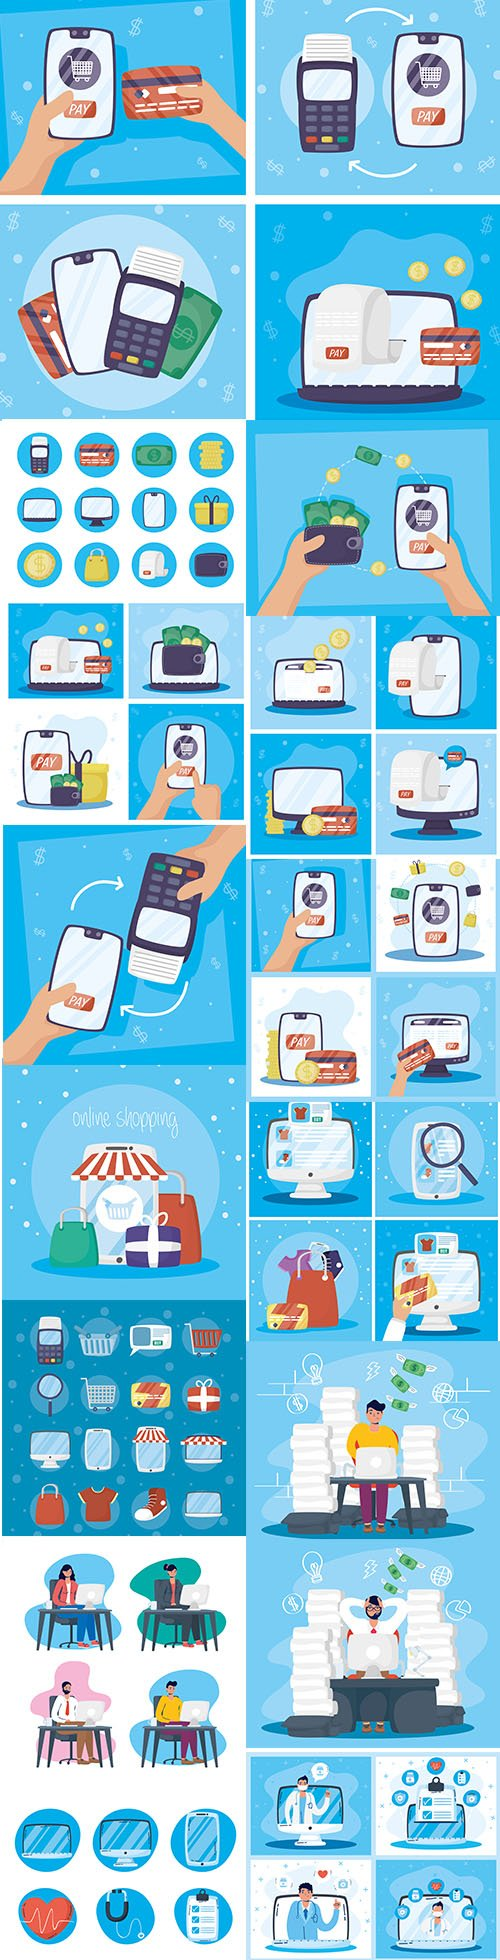 Payments and Health Online Technology with Smartphone Set